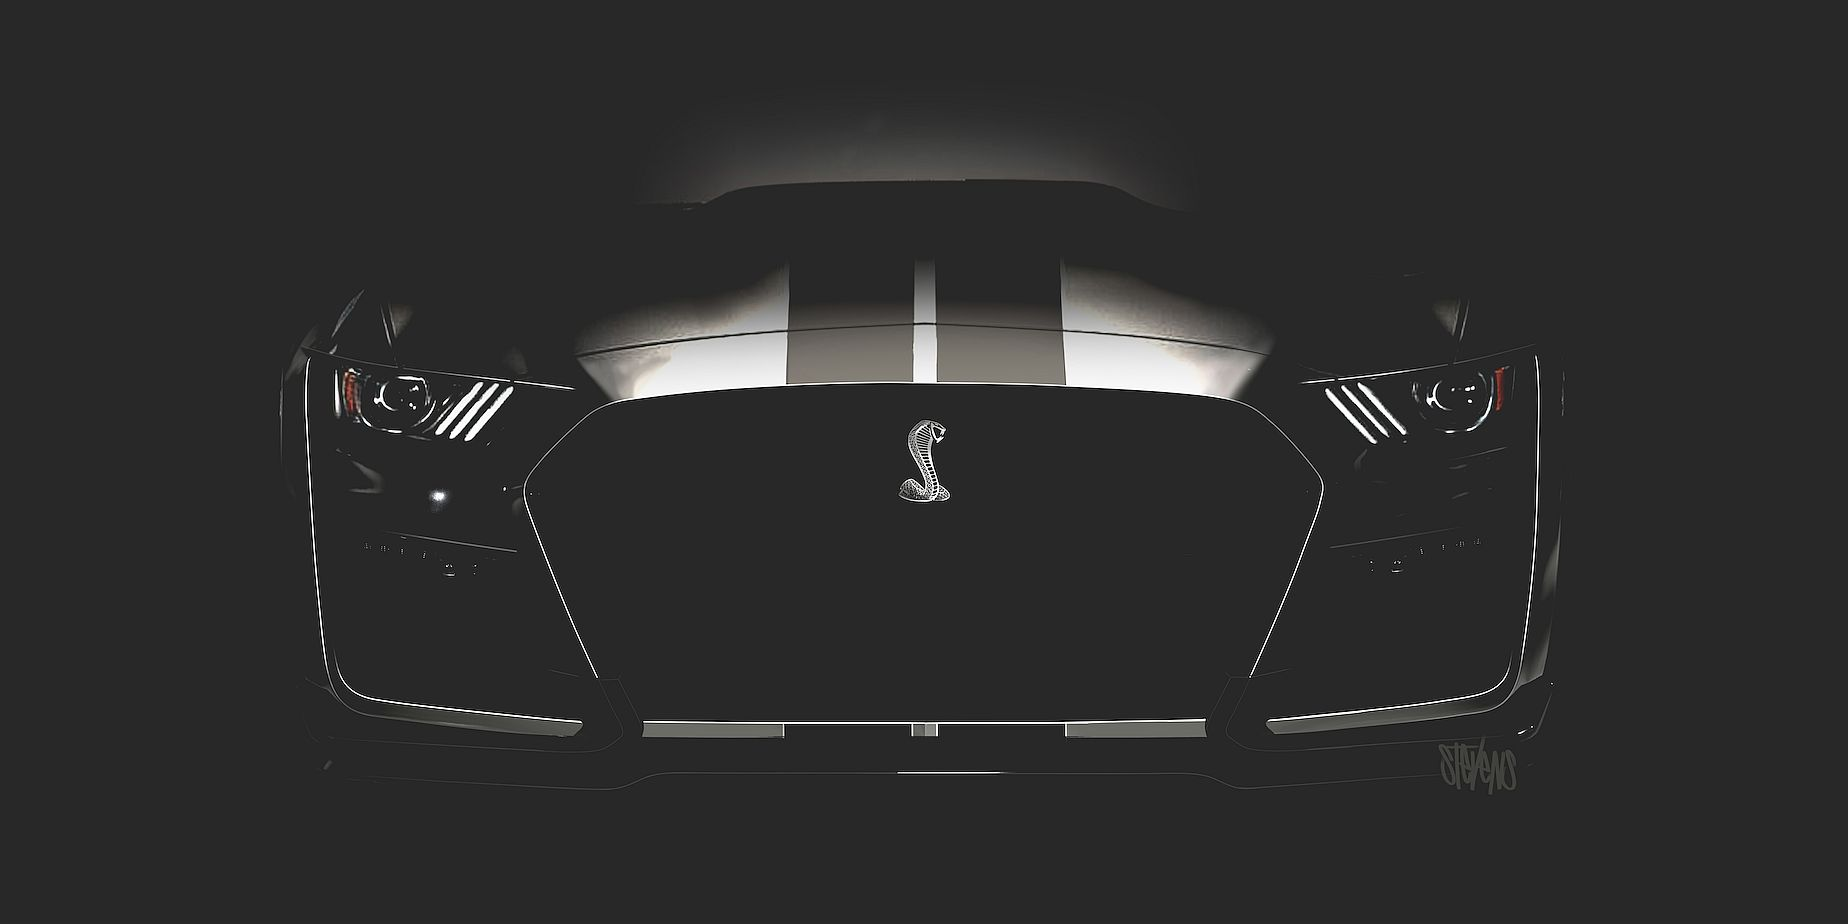 Shelby GT500 teaser image